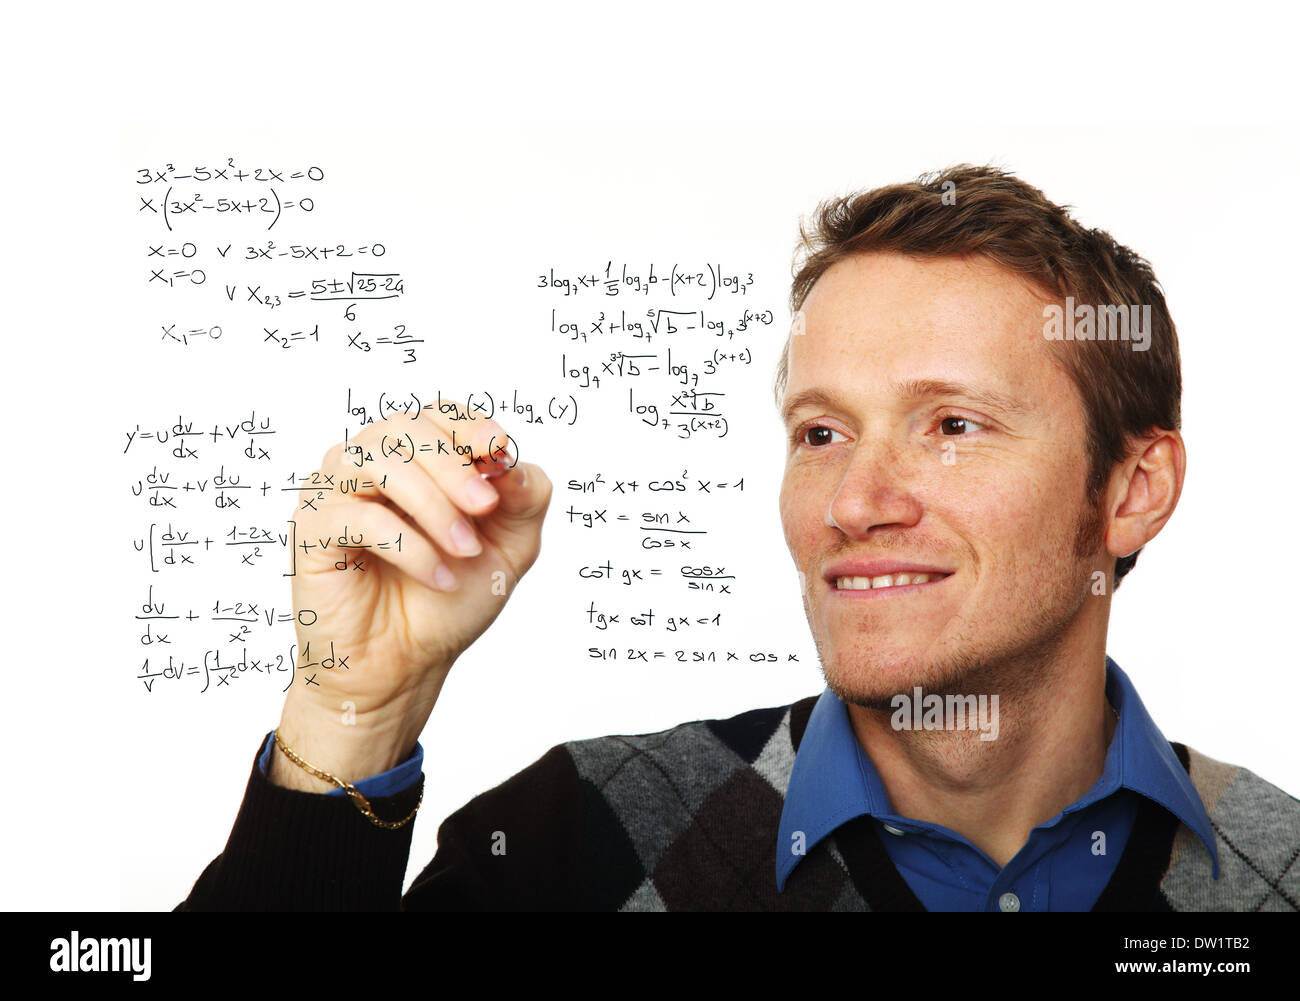 man write maths formula - Stock Image